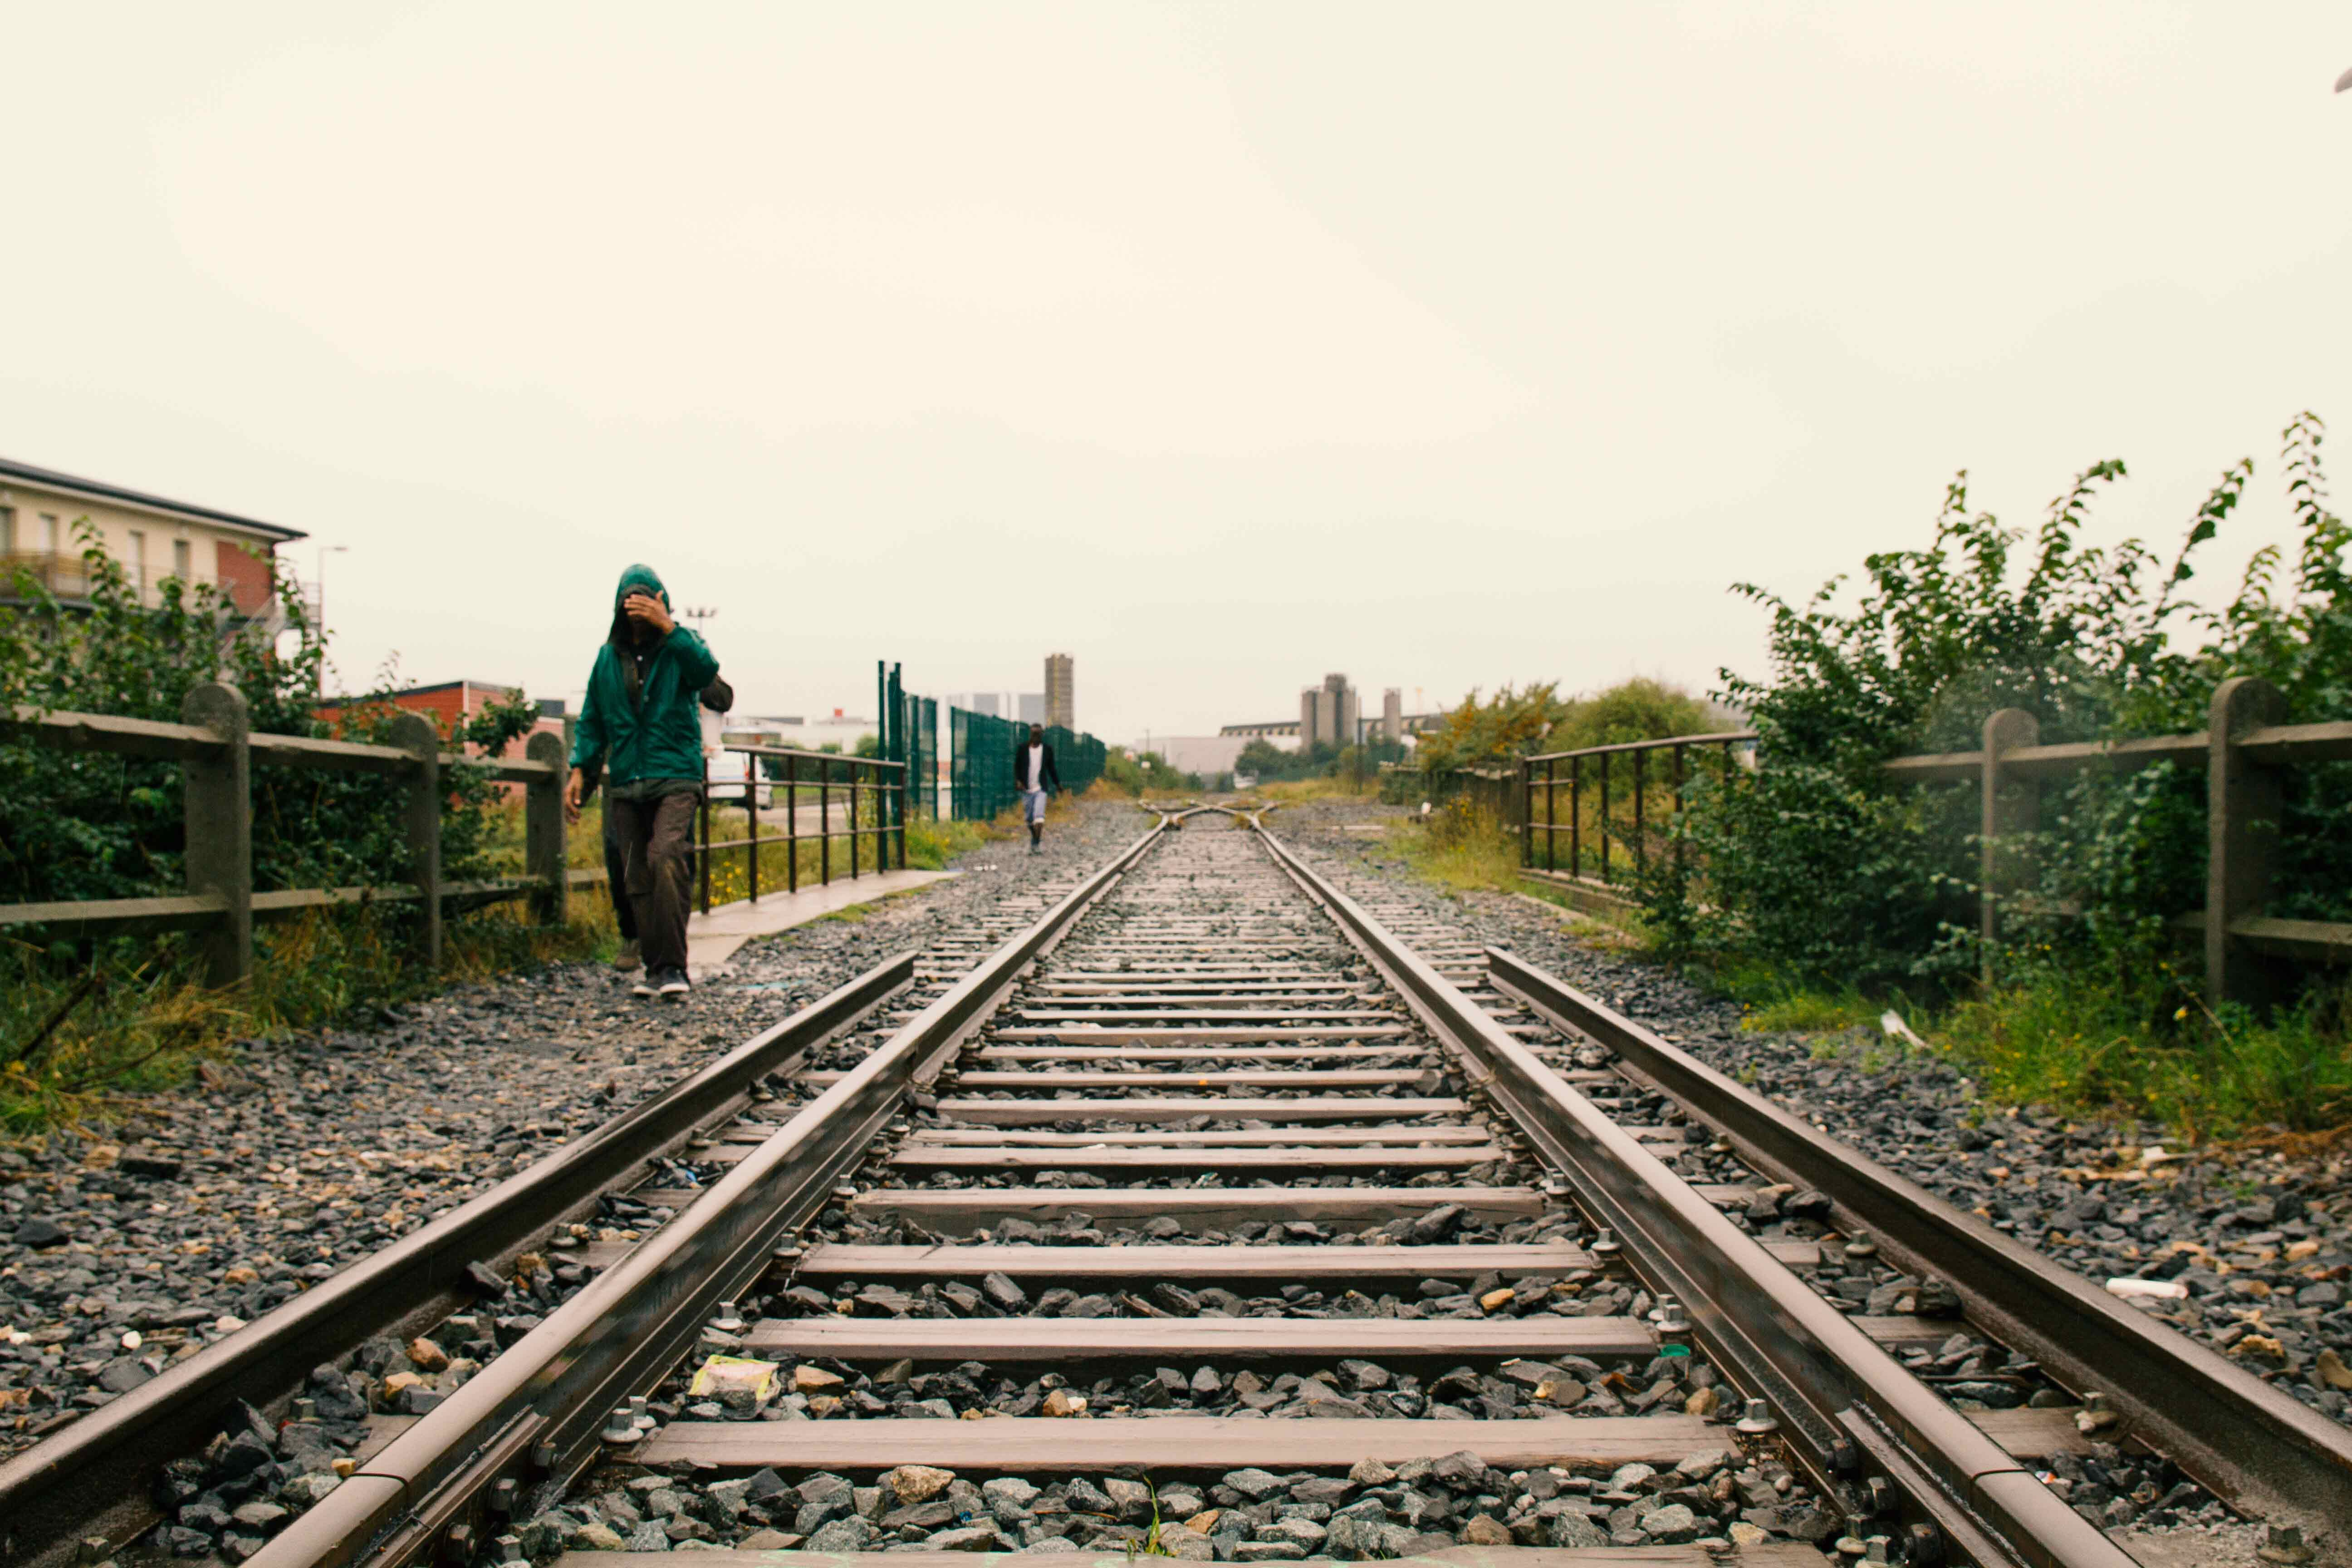 Refugees walk along the railway tracks that lead to the camp. Photo by Ricardo Miguel Vieira.